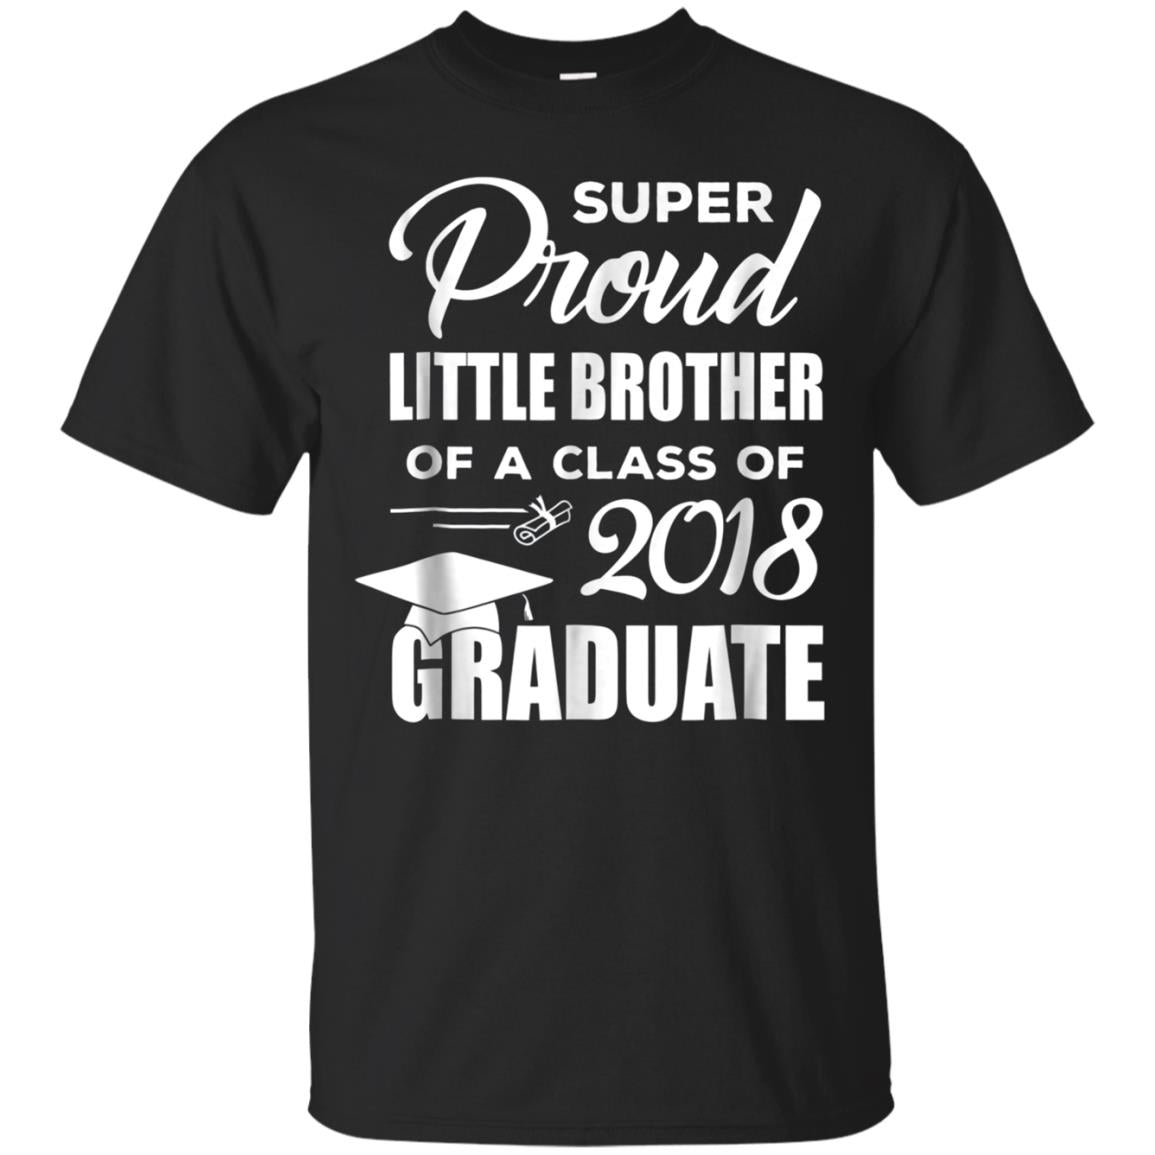 Super Proud Little Brother 2018 Graduate Graduation T-Shirt